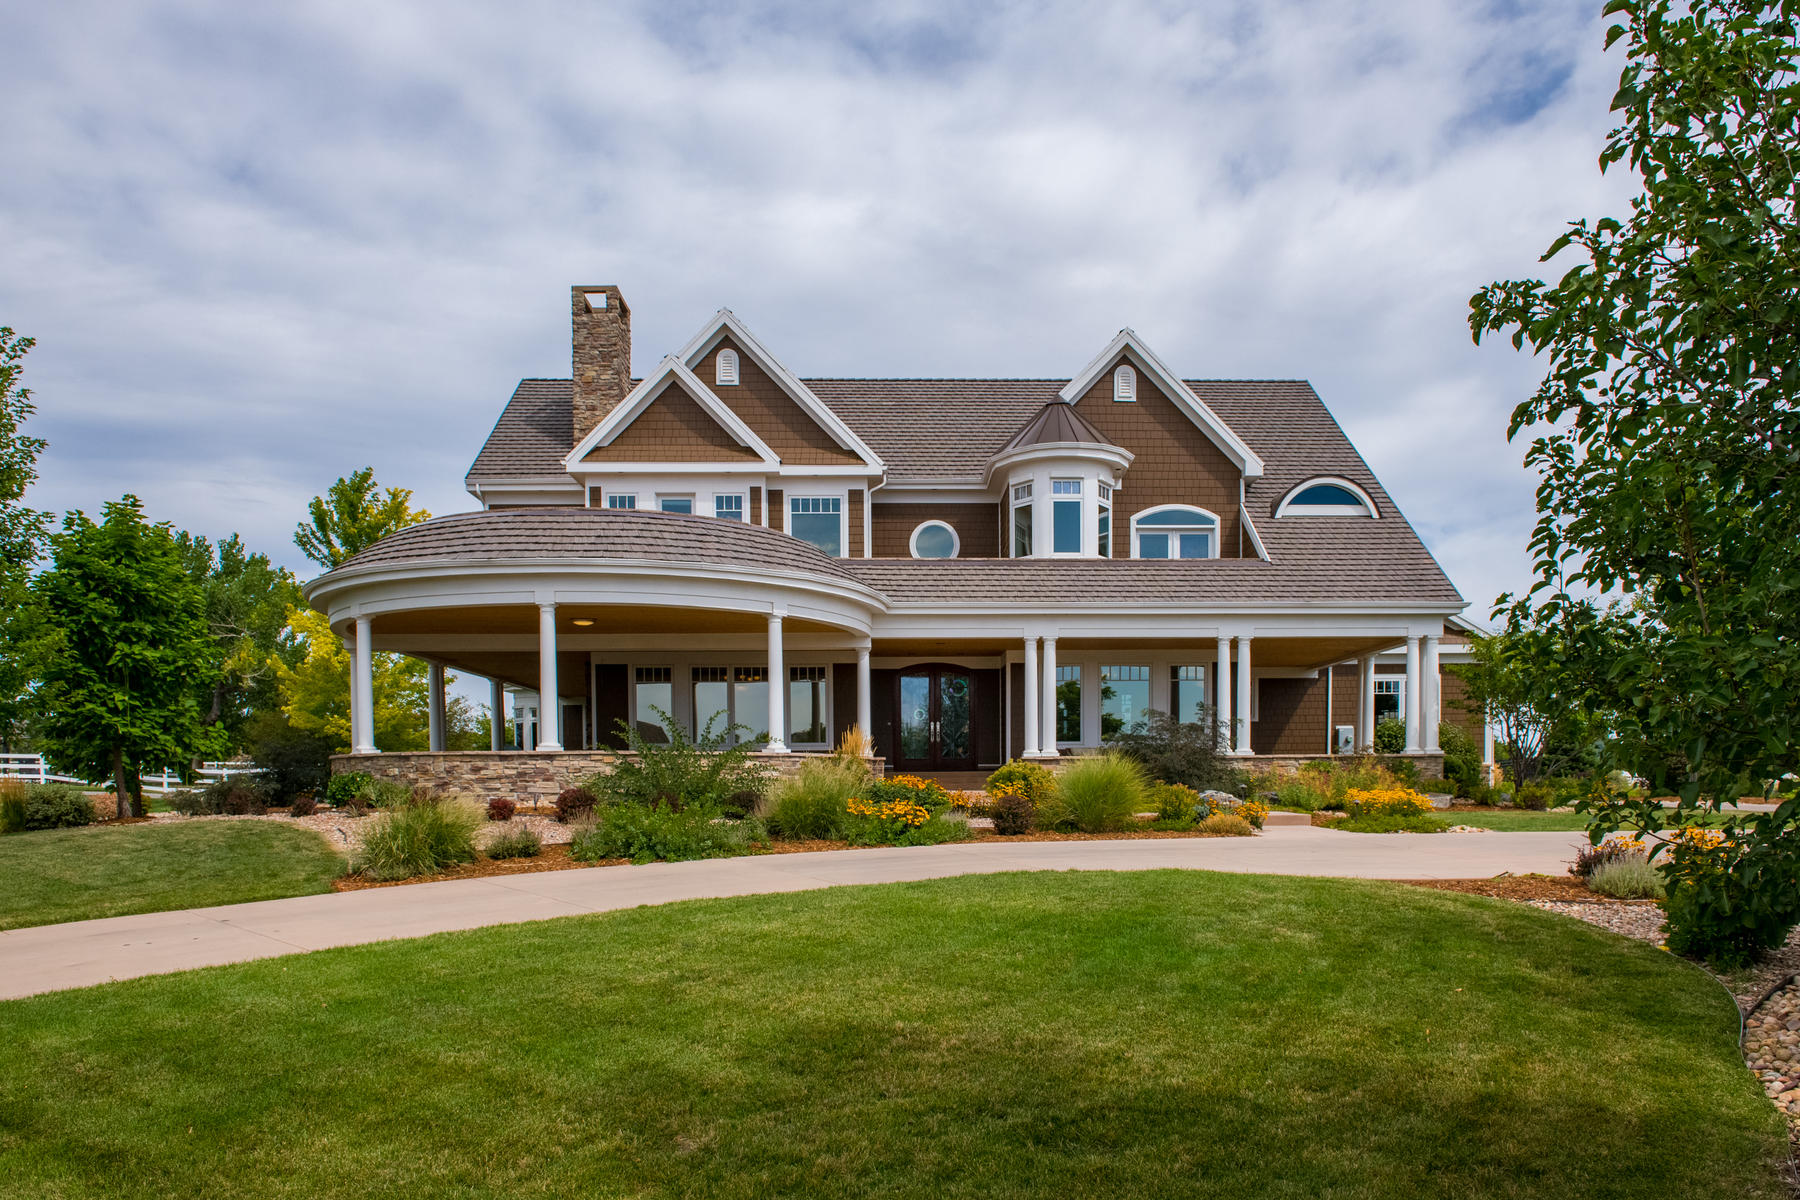 Single Family Homes for Active at Sophisticated Coastal-Style Custom on 1.56 Acres is a Connoisseur's Dream 15144 Prairie Place Broomfield, Colorado 80023 United States